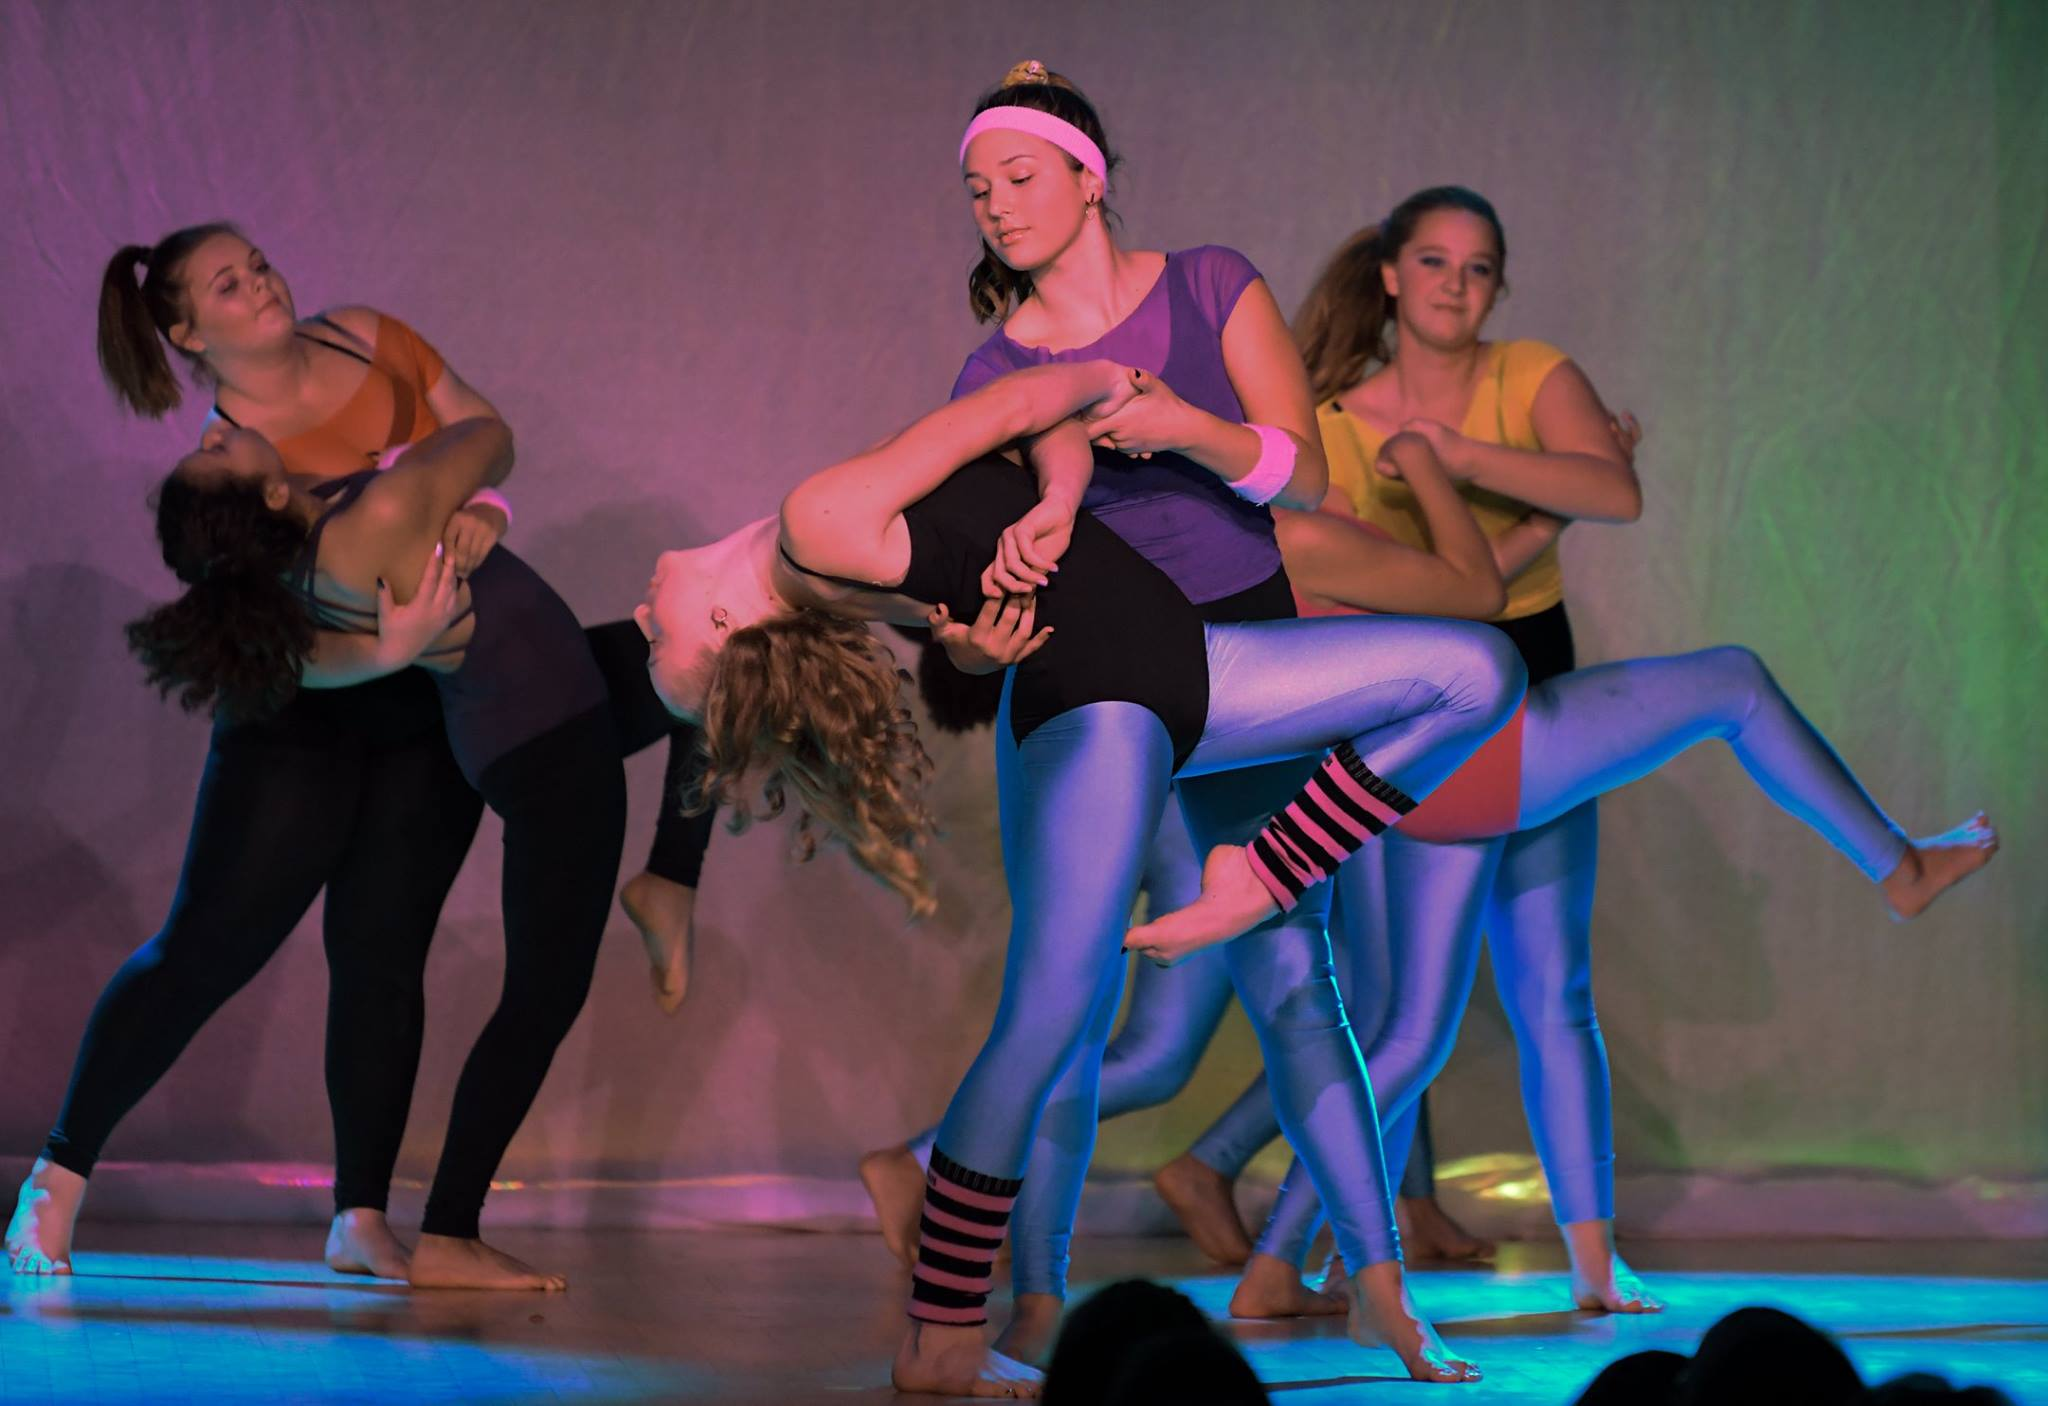 A performance done by the dance club, three pairs of girls dipping their partner into the floor and then helping them stand back up.